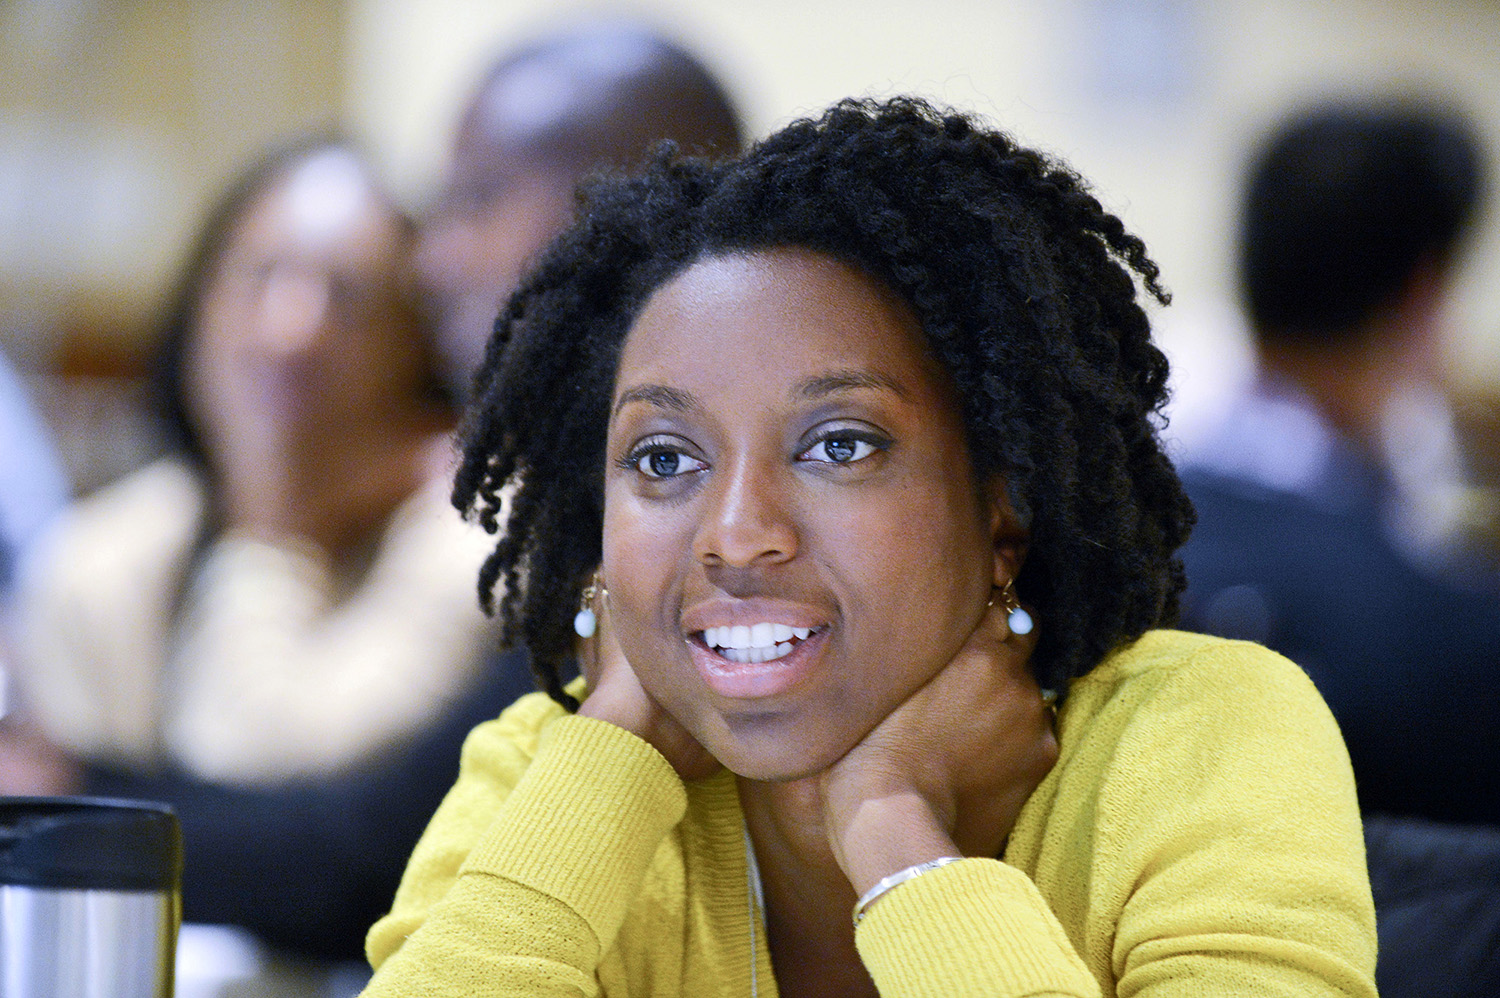 An Afro- American woman business student in a yellow sweater listening to a speaker leading a panel discussion in Boston, MA